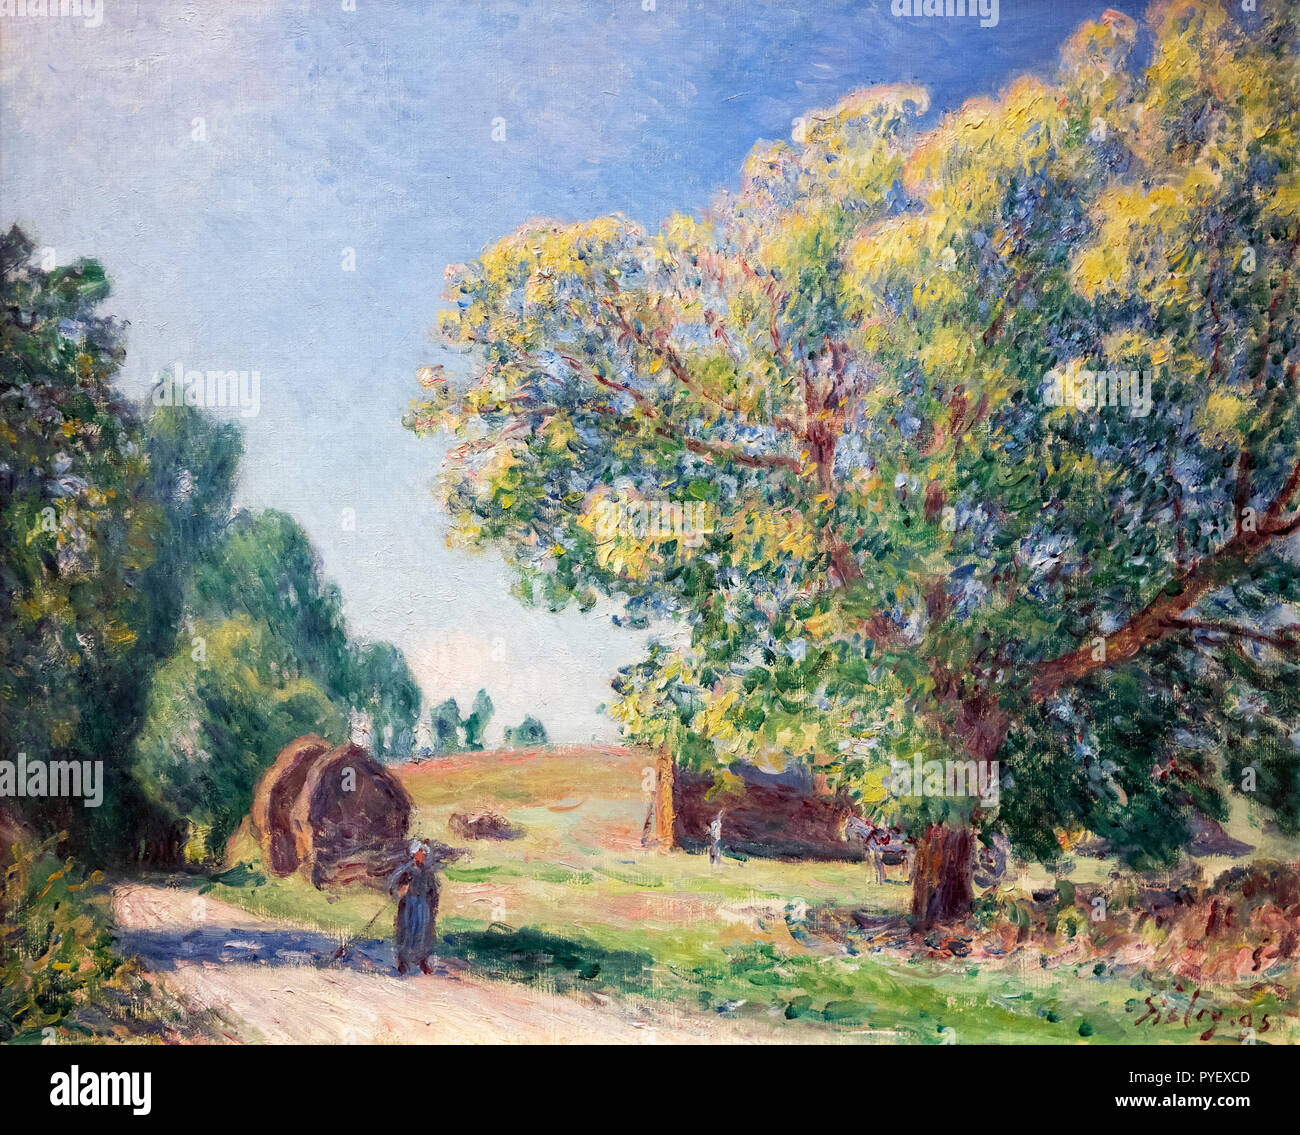 A Forest Clearing by Alfred Sisley (1839-1899), oil on canvas, 1895 - Stock Image